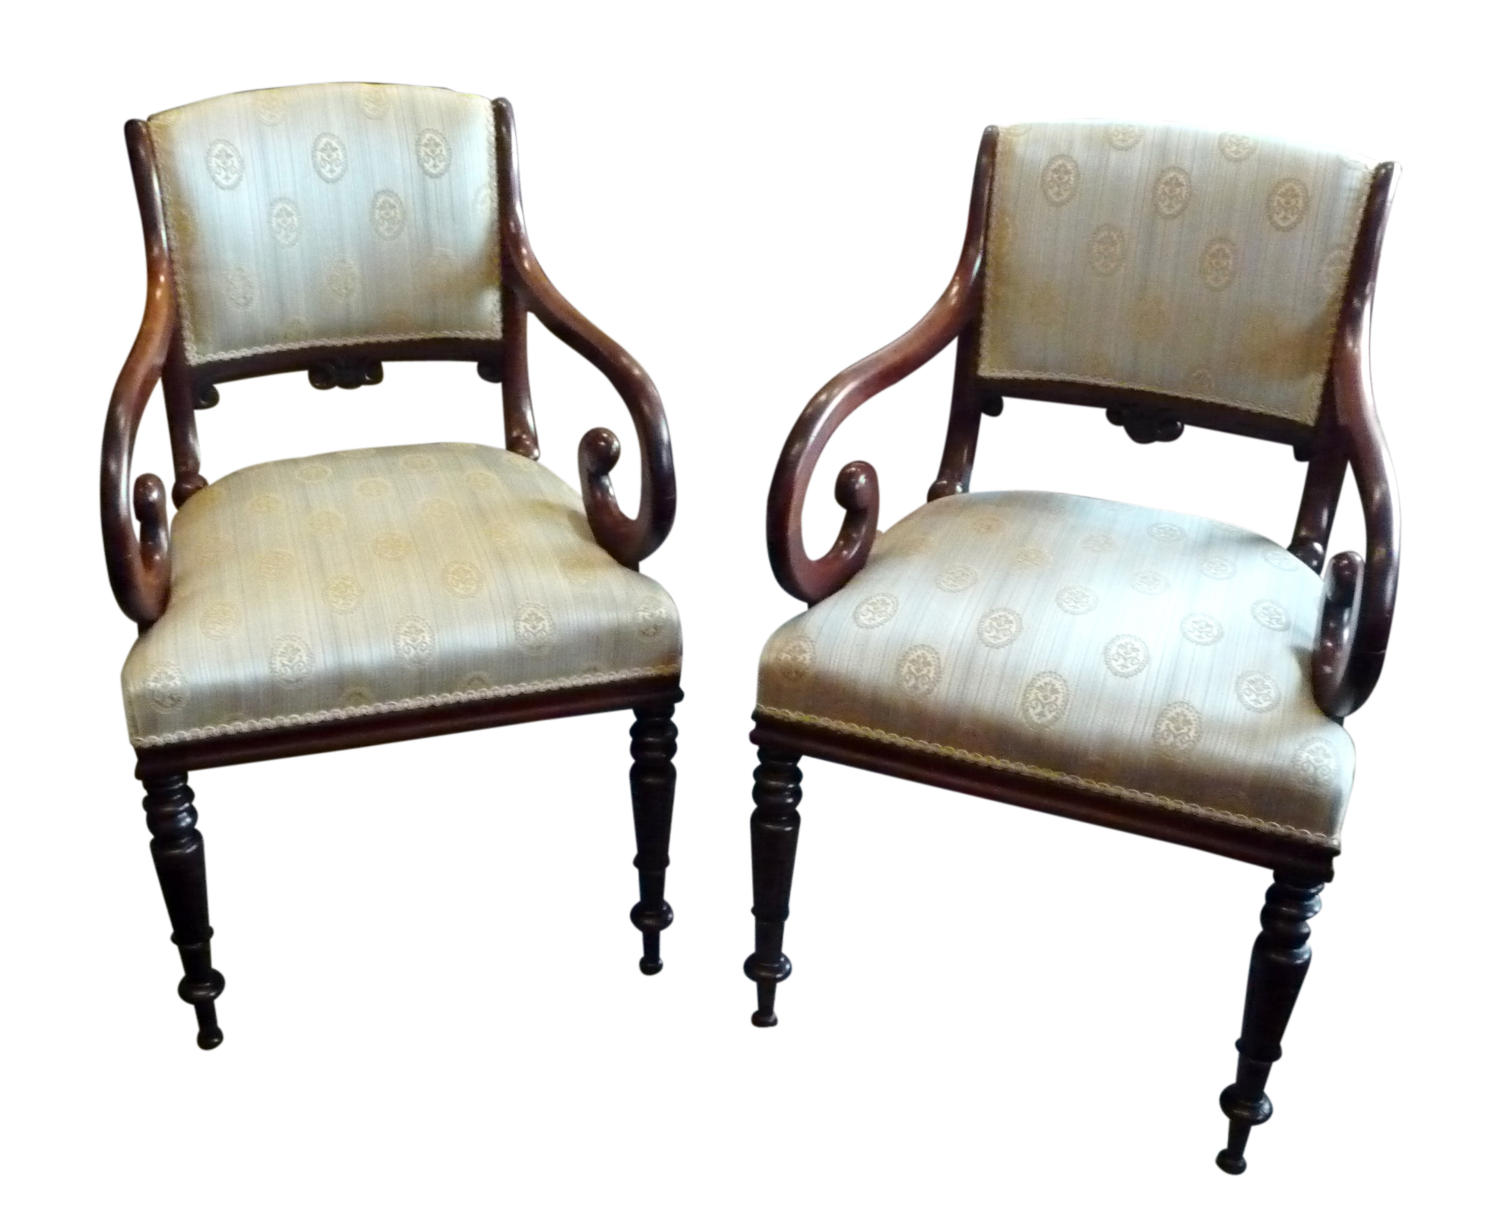 A pair of William IV mahogany elbow chairs circa 1830